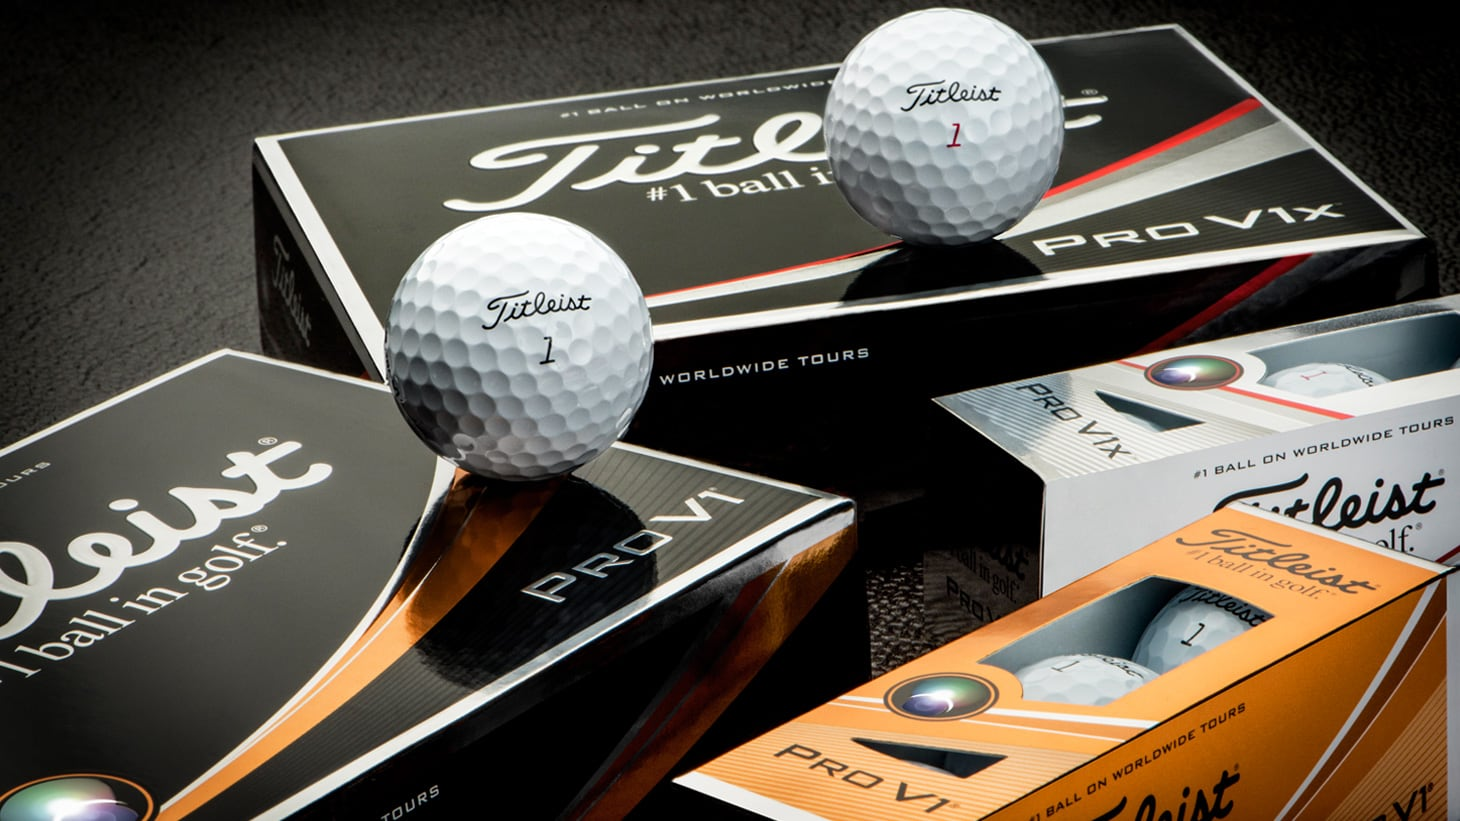 The new Titleist Pro V1 and Pro V1x golf balls are the most advanced a199c570d4d